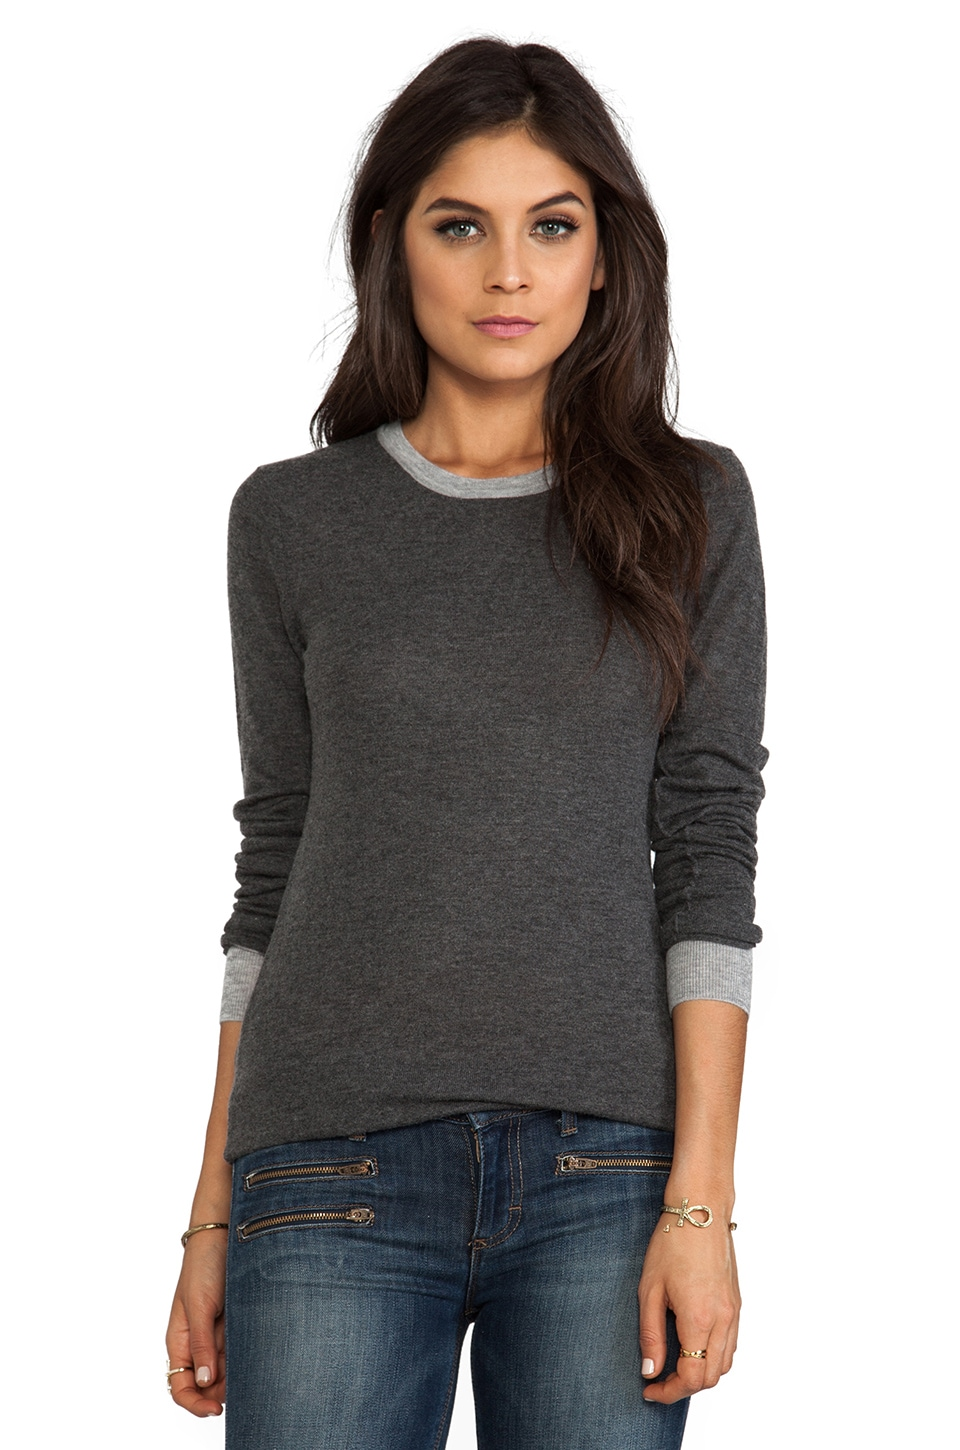 Nanette Lepore Jupiter Sweater in Pebble/Fog